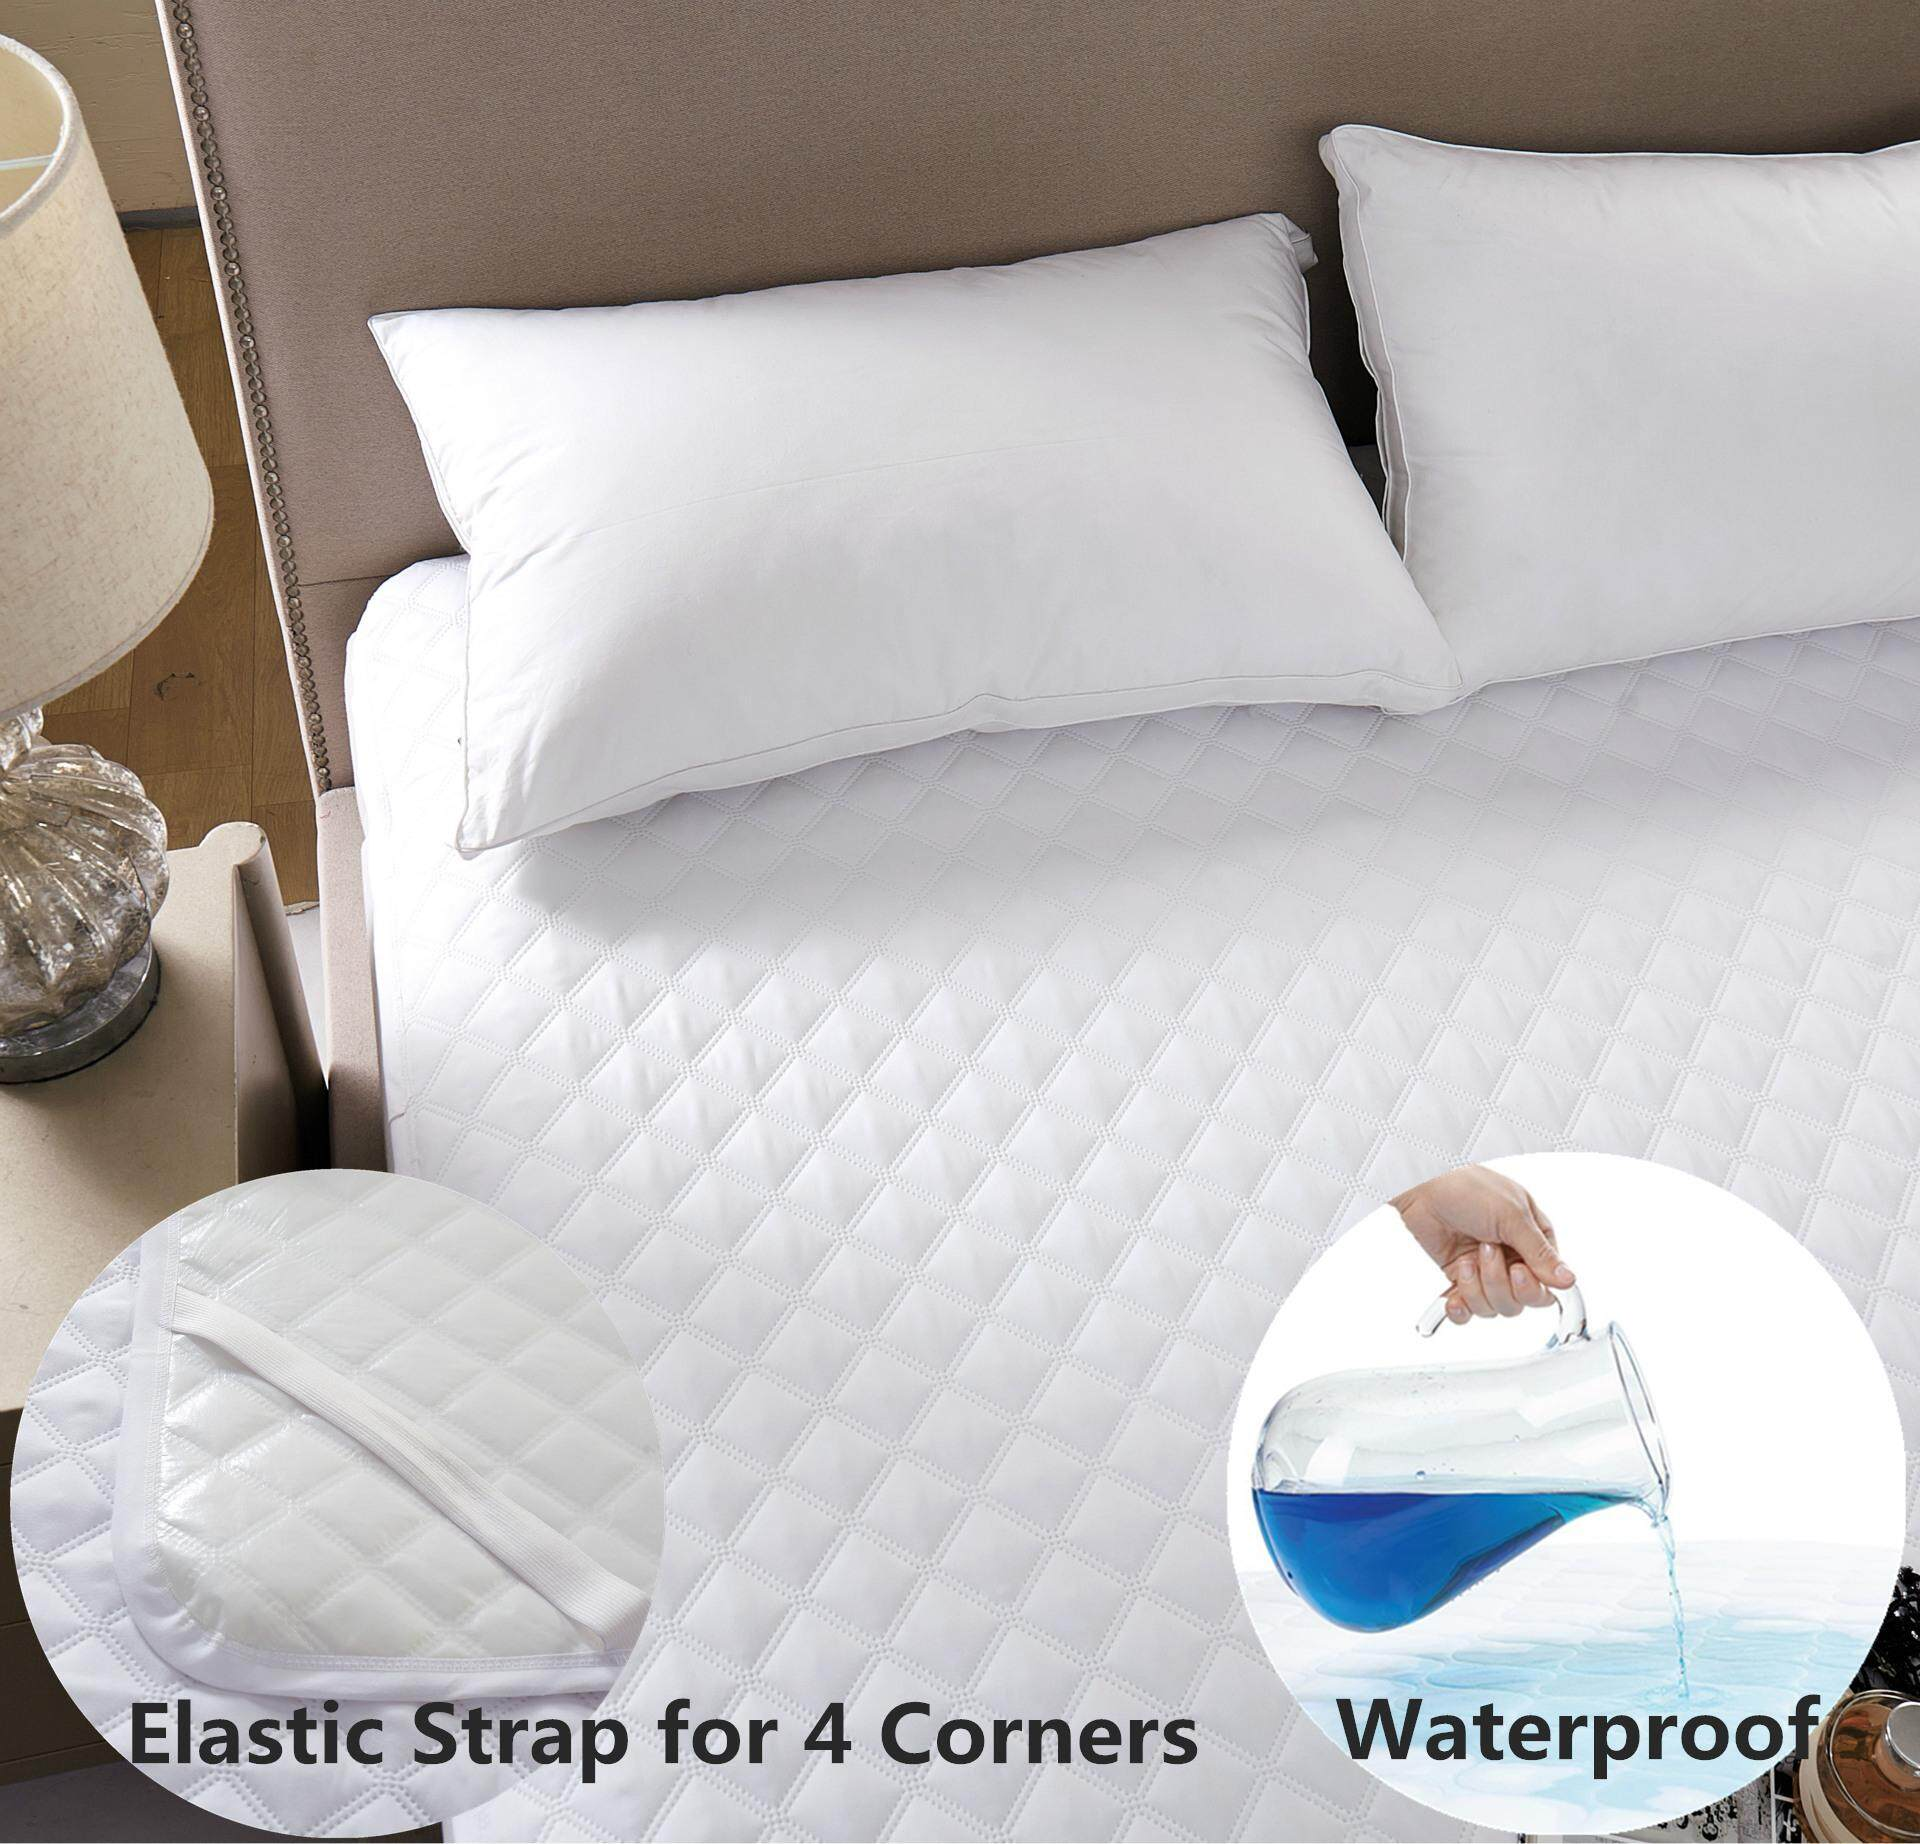 4-Layer Waterproof Mattress Cover, Bed Wetting Sheet Protector, Machine Washable, Adults, Children, Dogs By Fashion District.